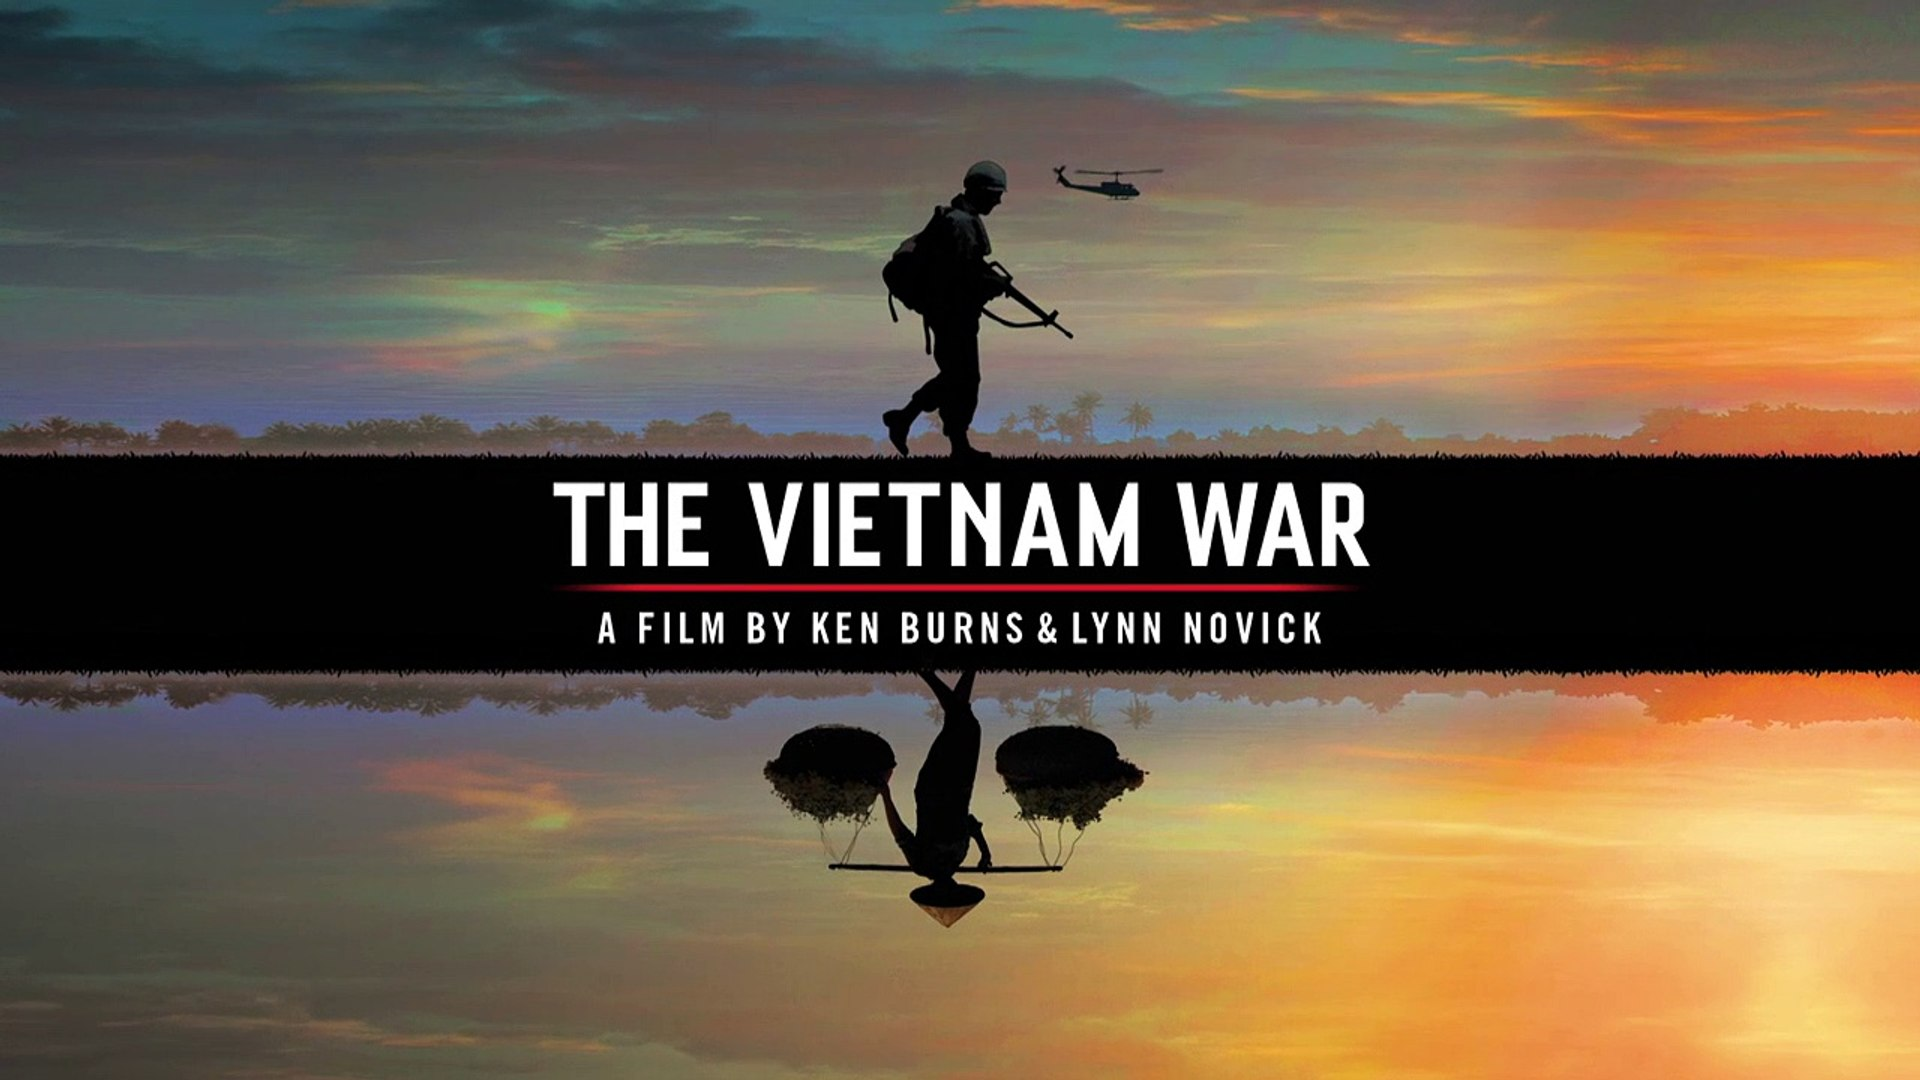 03/01 The River Styx (January 1964-December 1965) - The Vietnam War - Broadcast Version